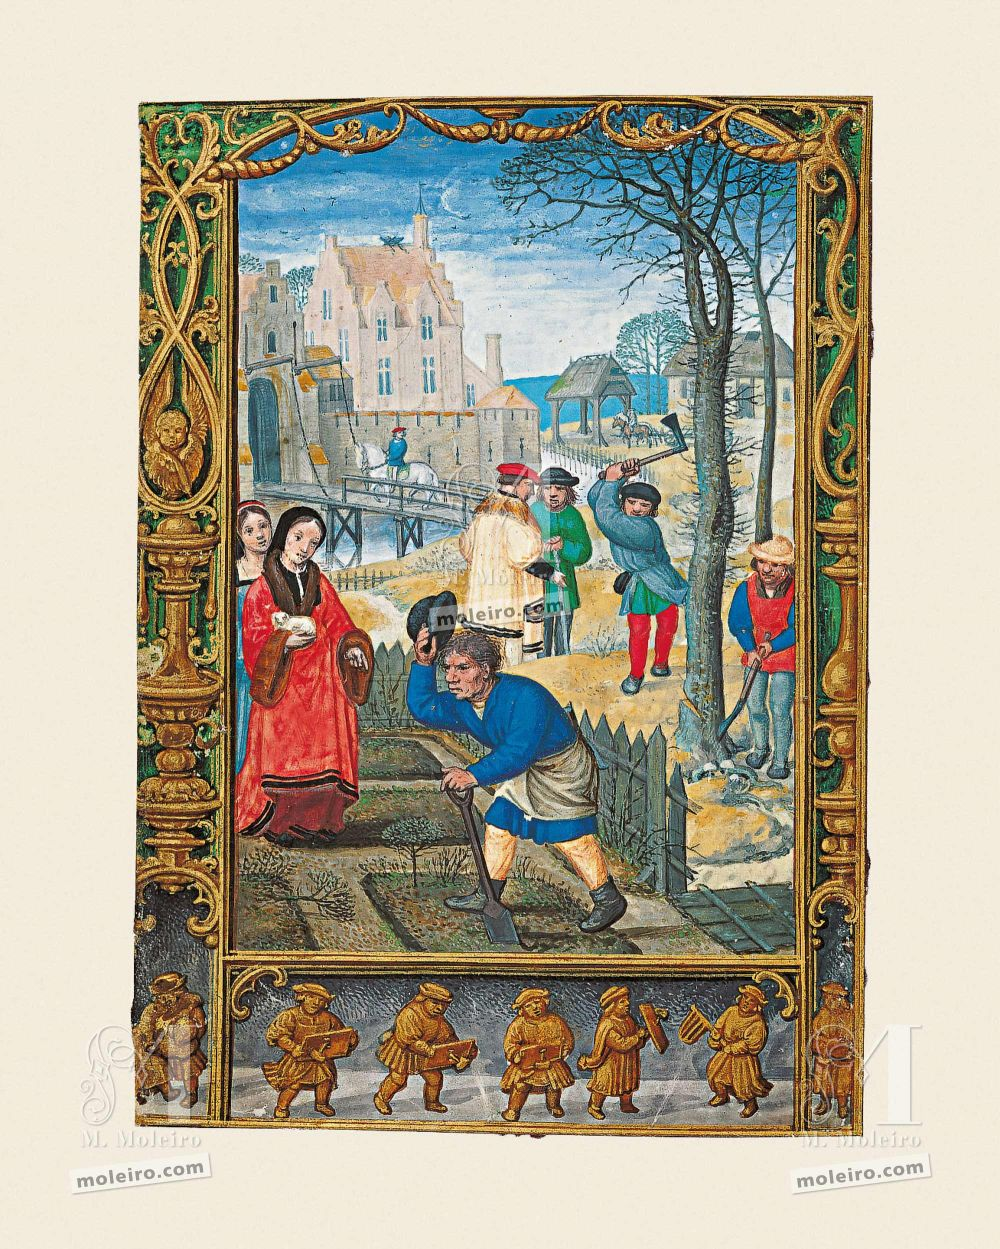 The Golf Book (Book of Hours) f. 20v, March, city scene